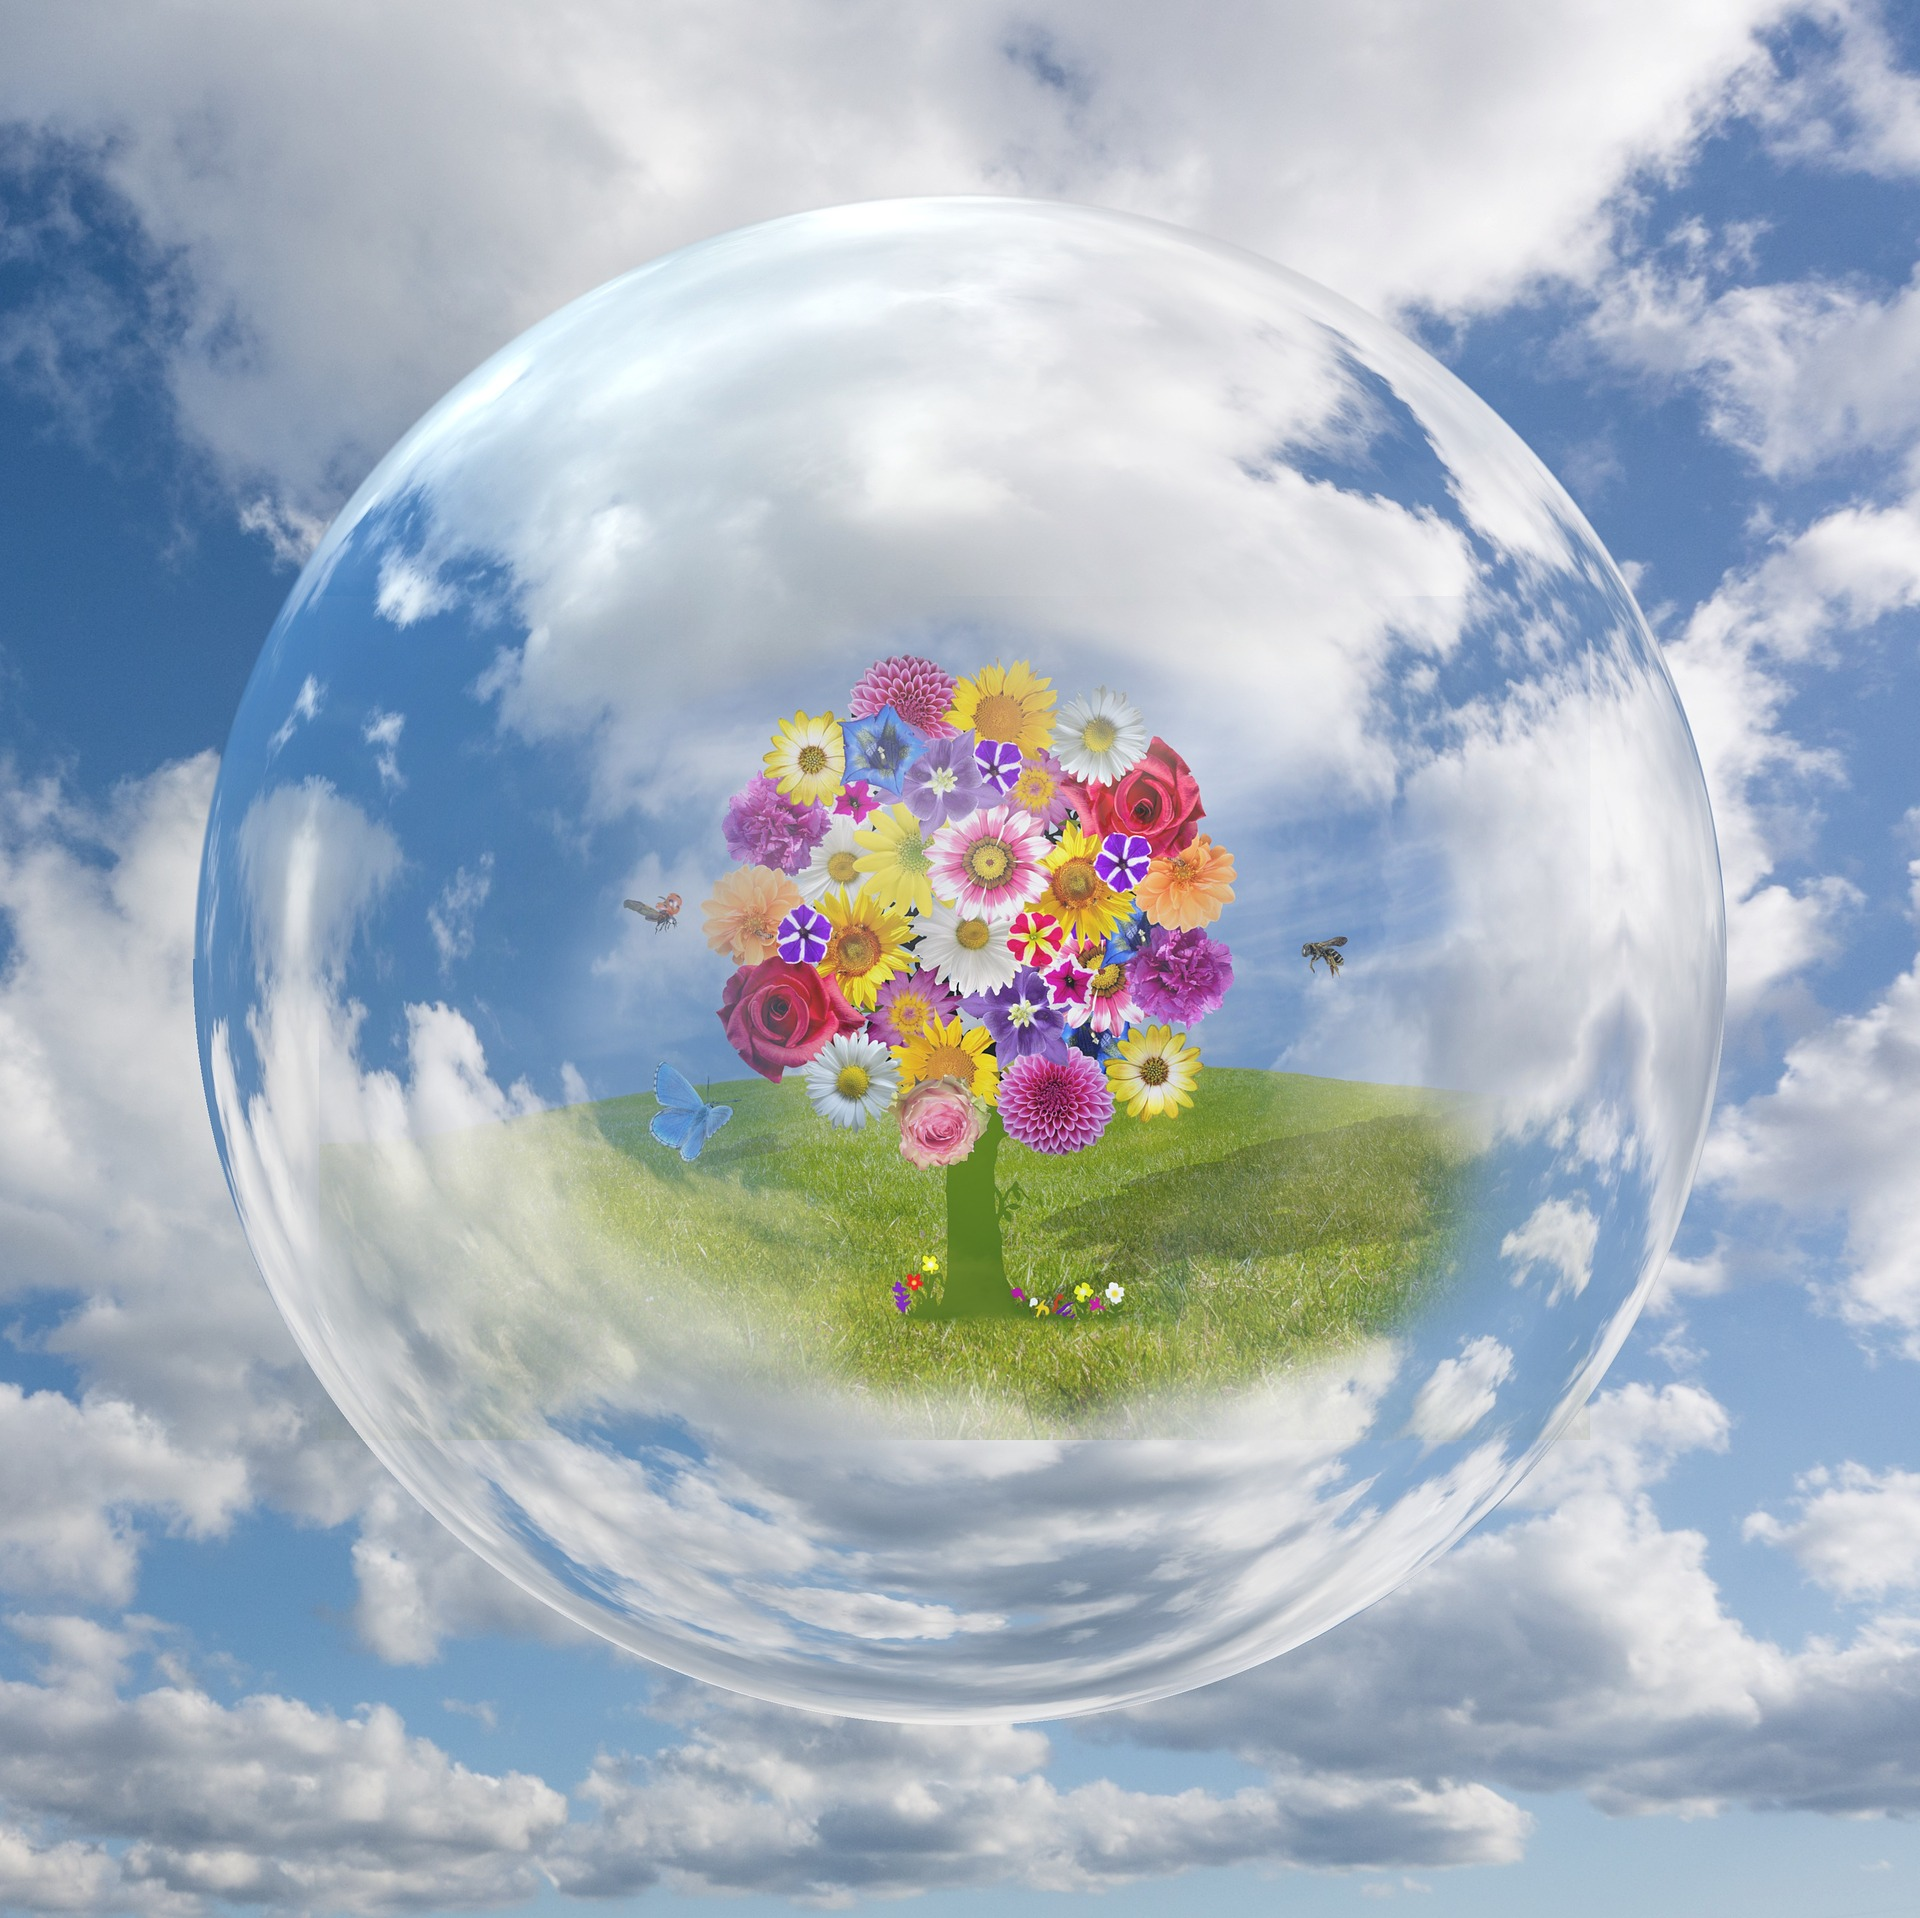 A tree made of flowers sits in a field of grass surrounded by butterflies, and encased in a bubble that floats in a partly-cloudy sky